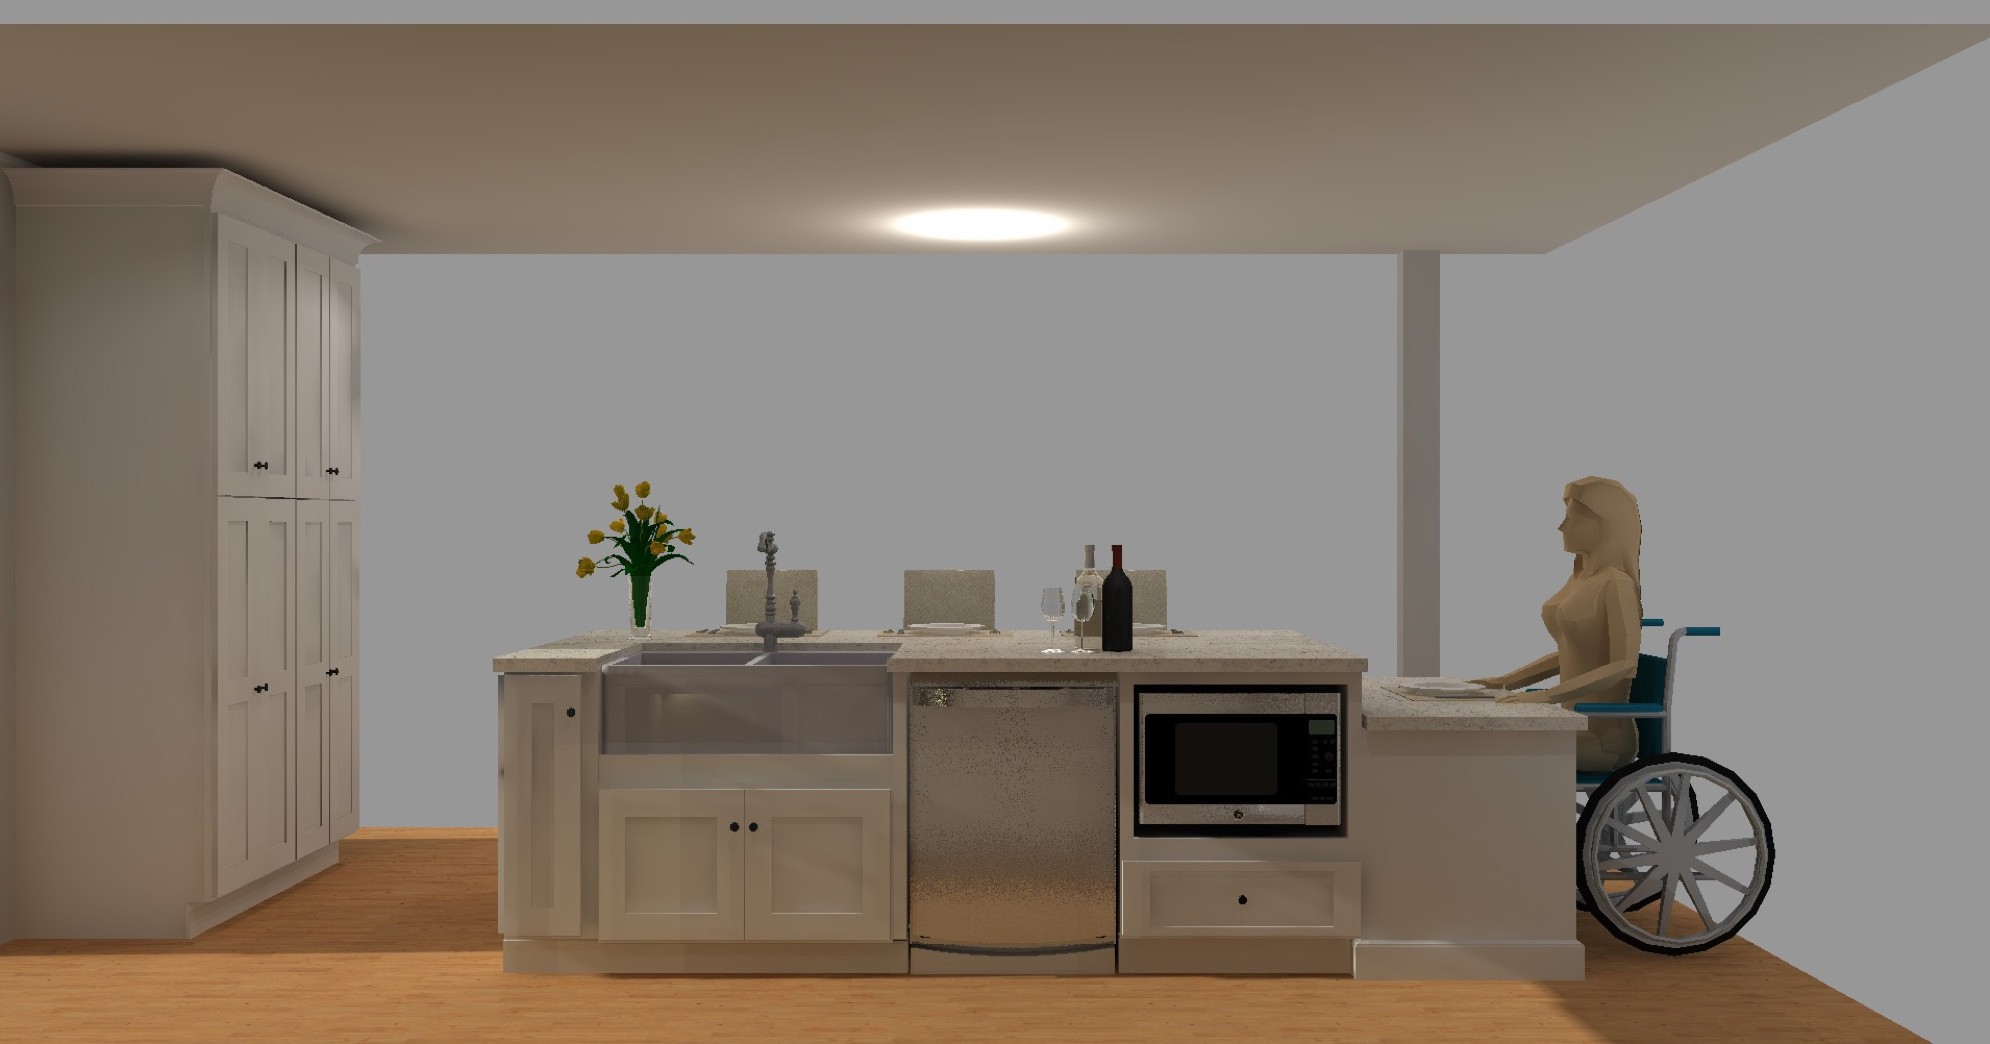 Creating An Ada Compliant Kitchen Cabinets Com